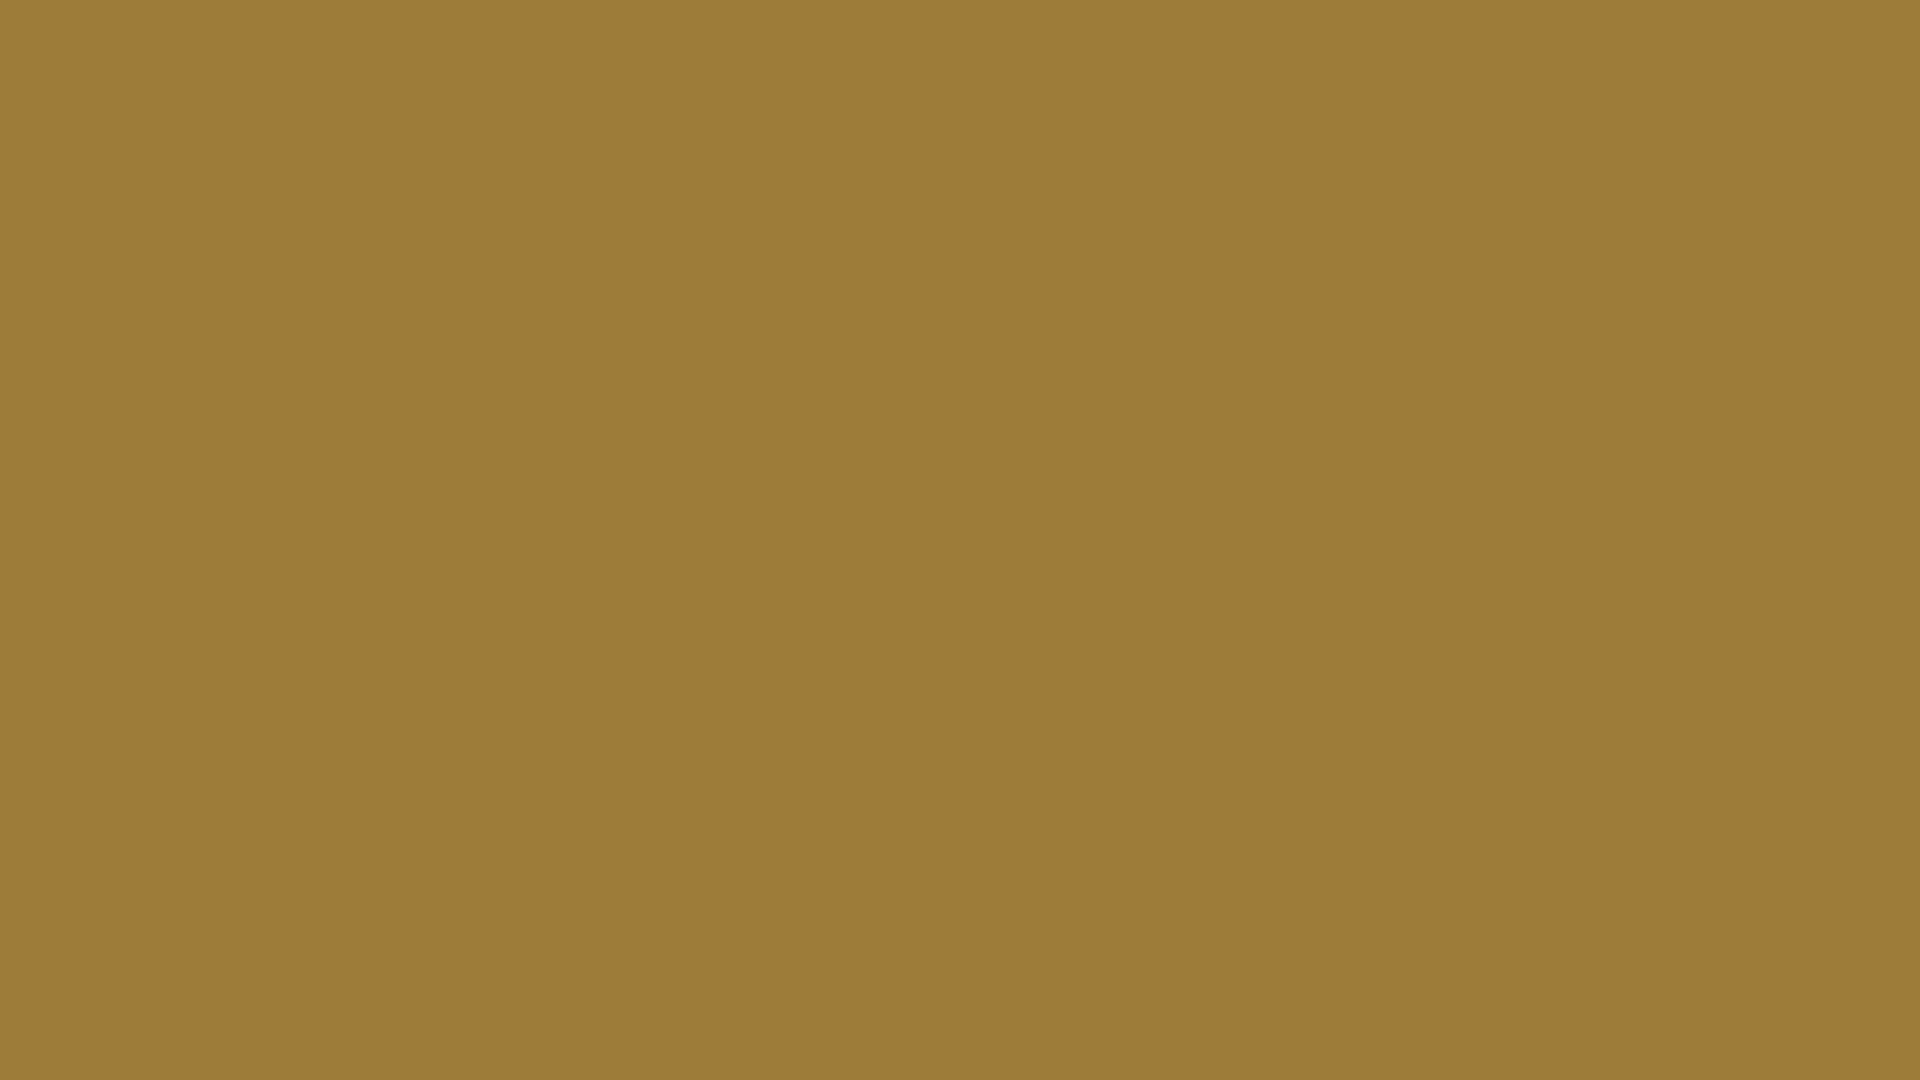 Privacy Policy >> 1920x1080 Metallic Sunburst Solid Color Background